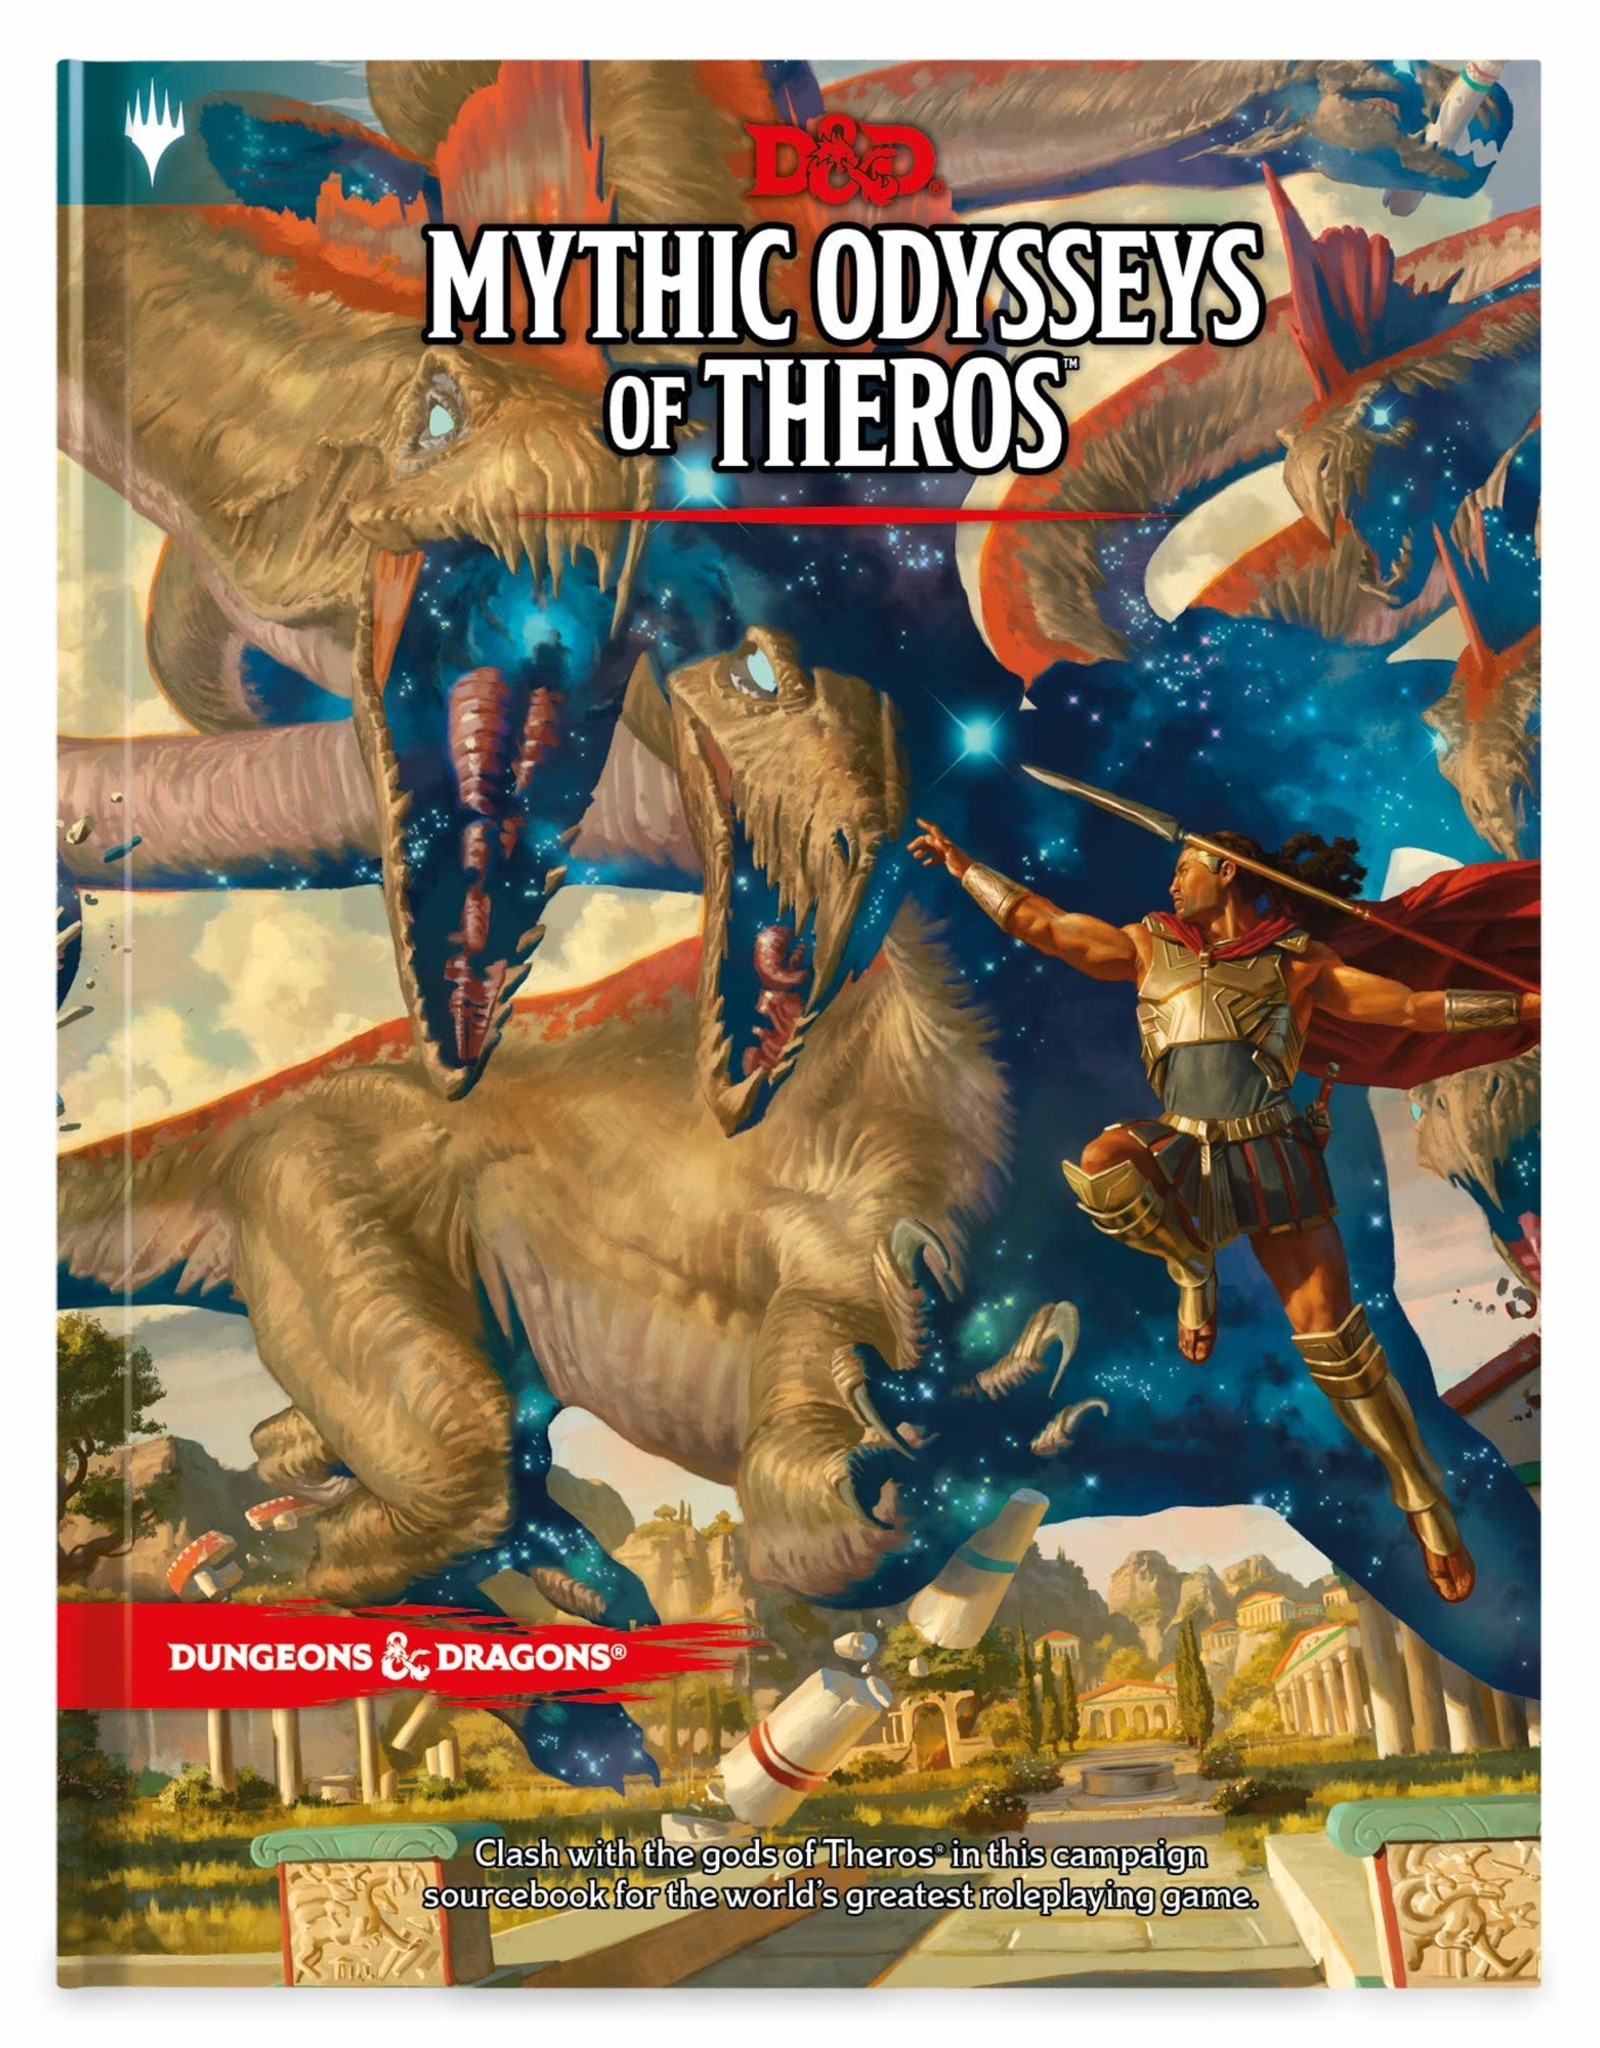 WIZARDS OF THE COAST DUNGEONS & DRAGONS MYTHIC ODYSSEYS OF THEROS PRE-ORDER